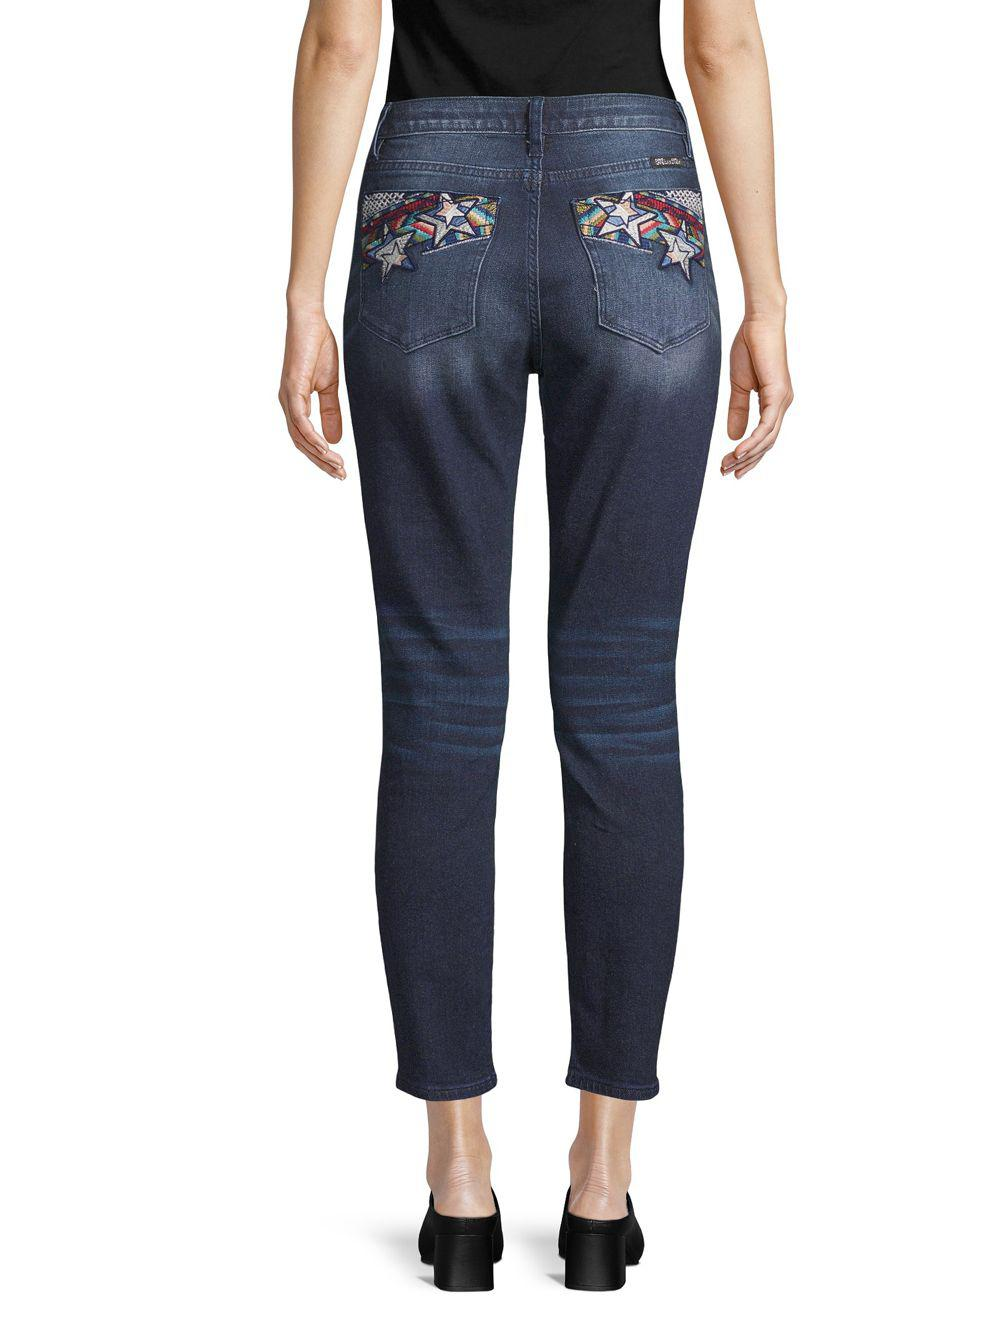 Miss Me Denim Embroidered Skinny Ankle Jeans in Blue